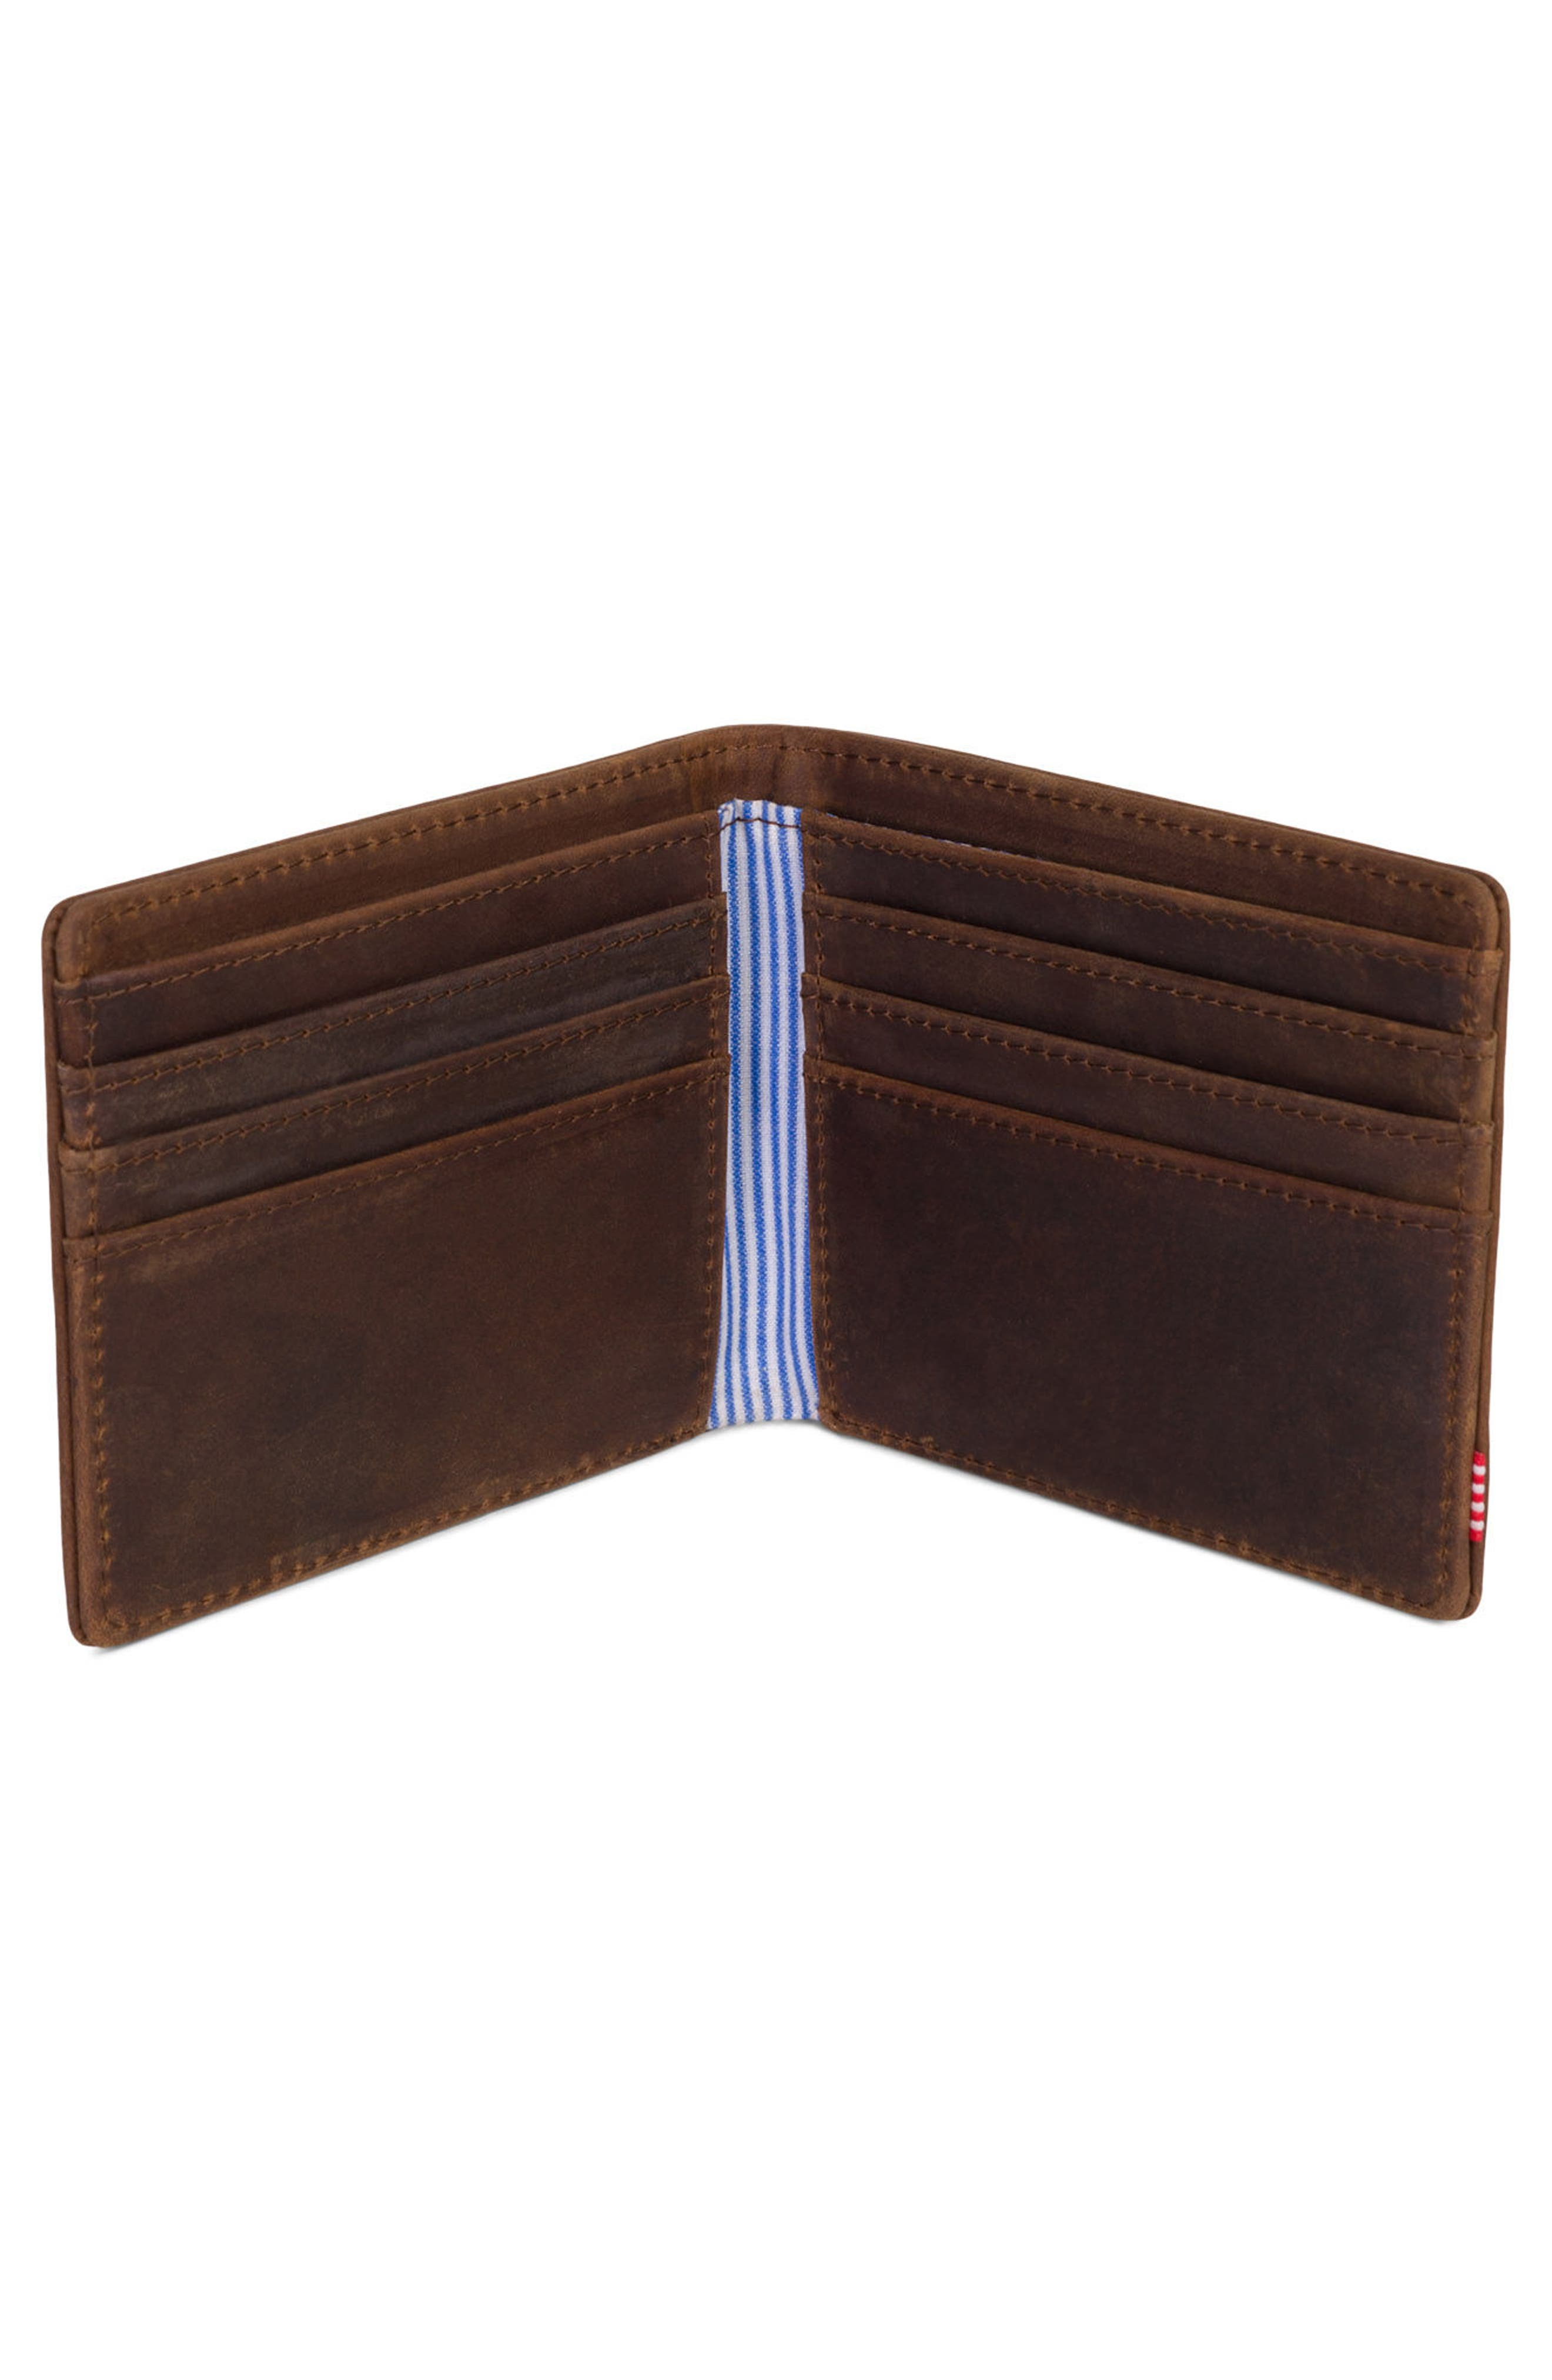 Roy Leather Wallet,                             Alternate thumbnail 2, color,                             Brown